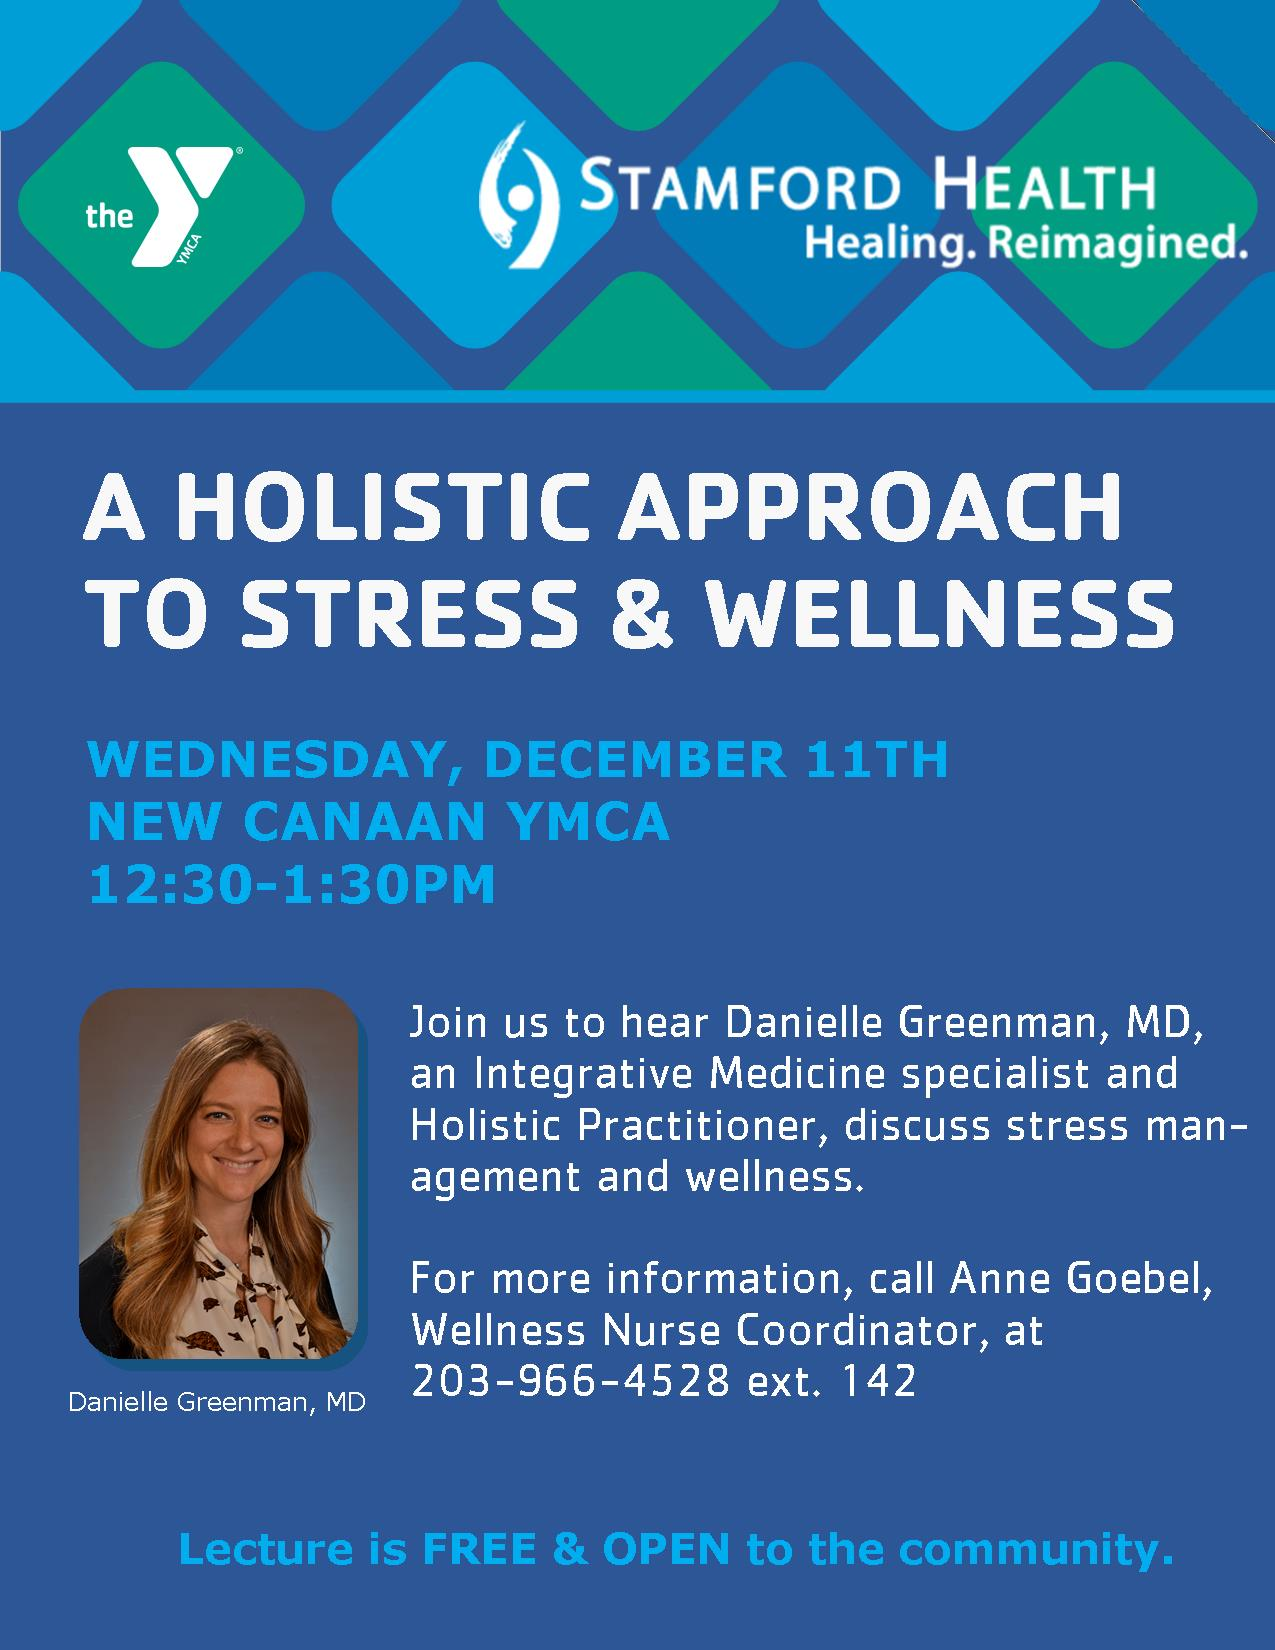 Stamford Health Lecture - A Holistic Approach to Stress & Wellness